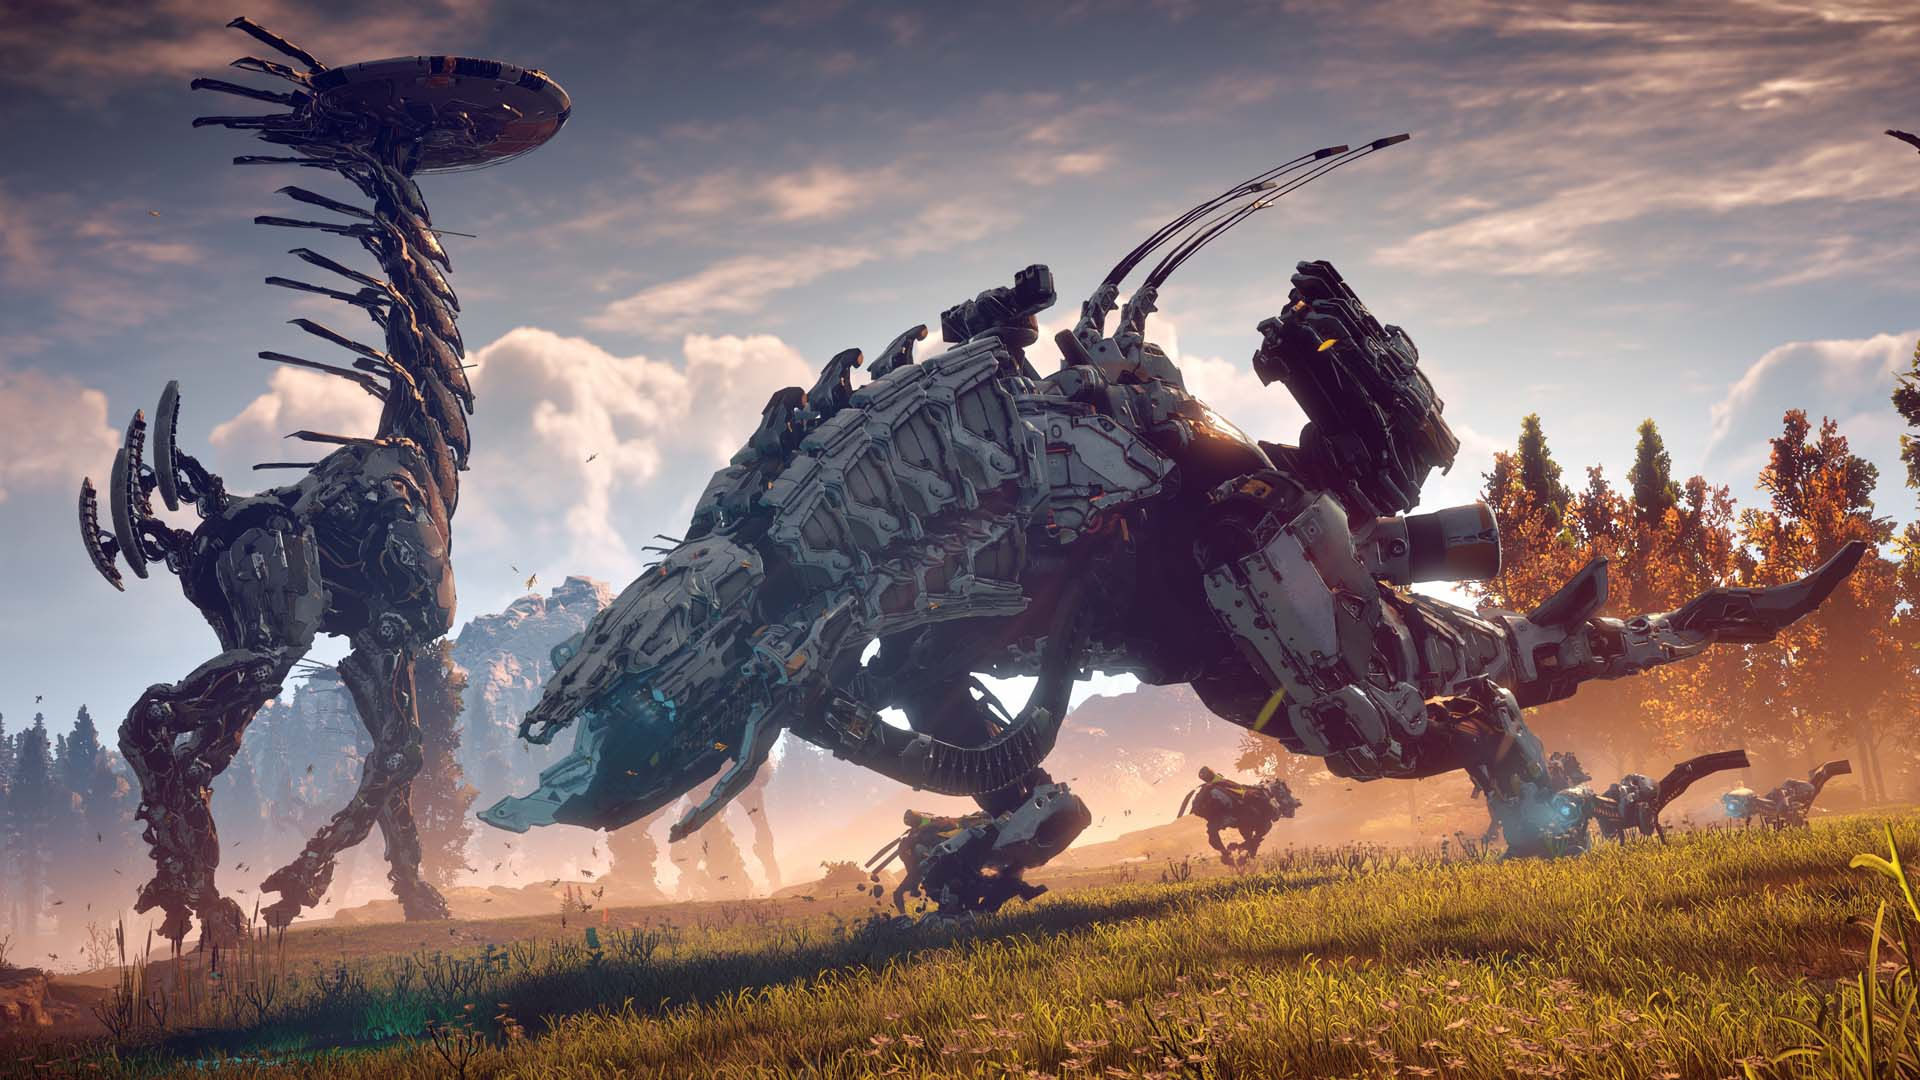 Horizon Zero Dawn was gorgeous on the PS4 Pro, imagine how games on the PlayStation 5 would look.